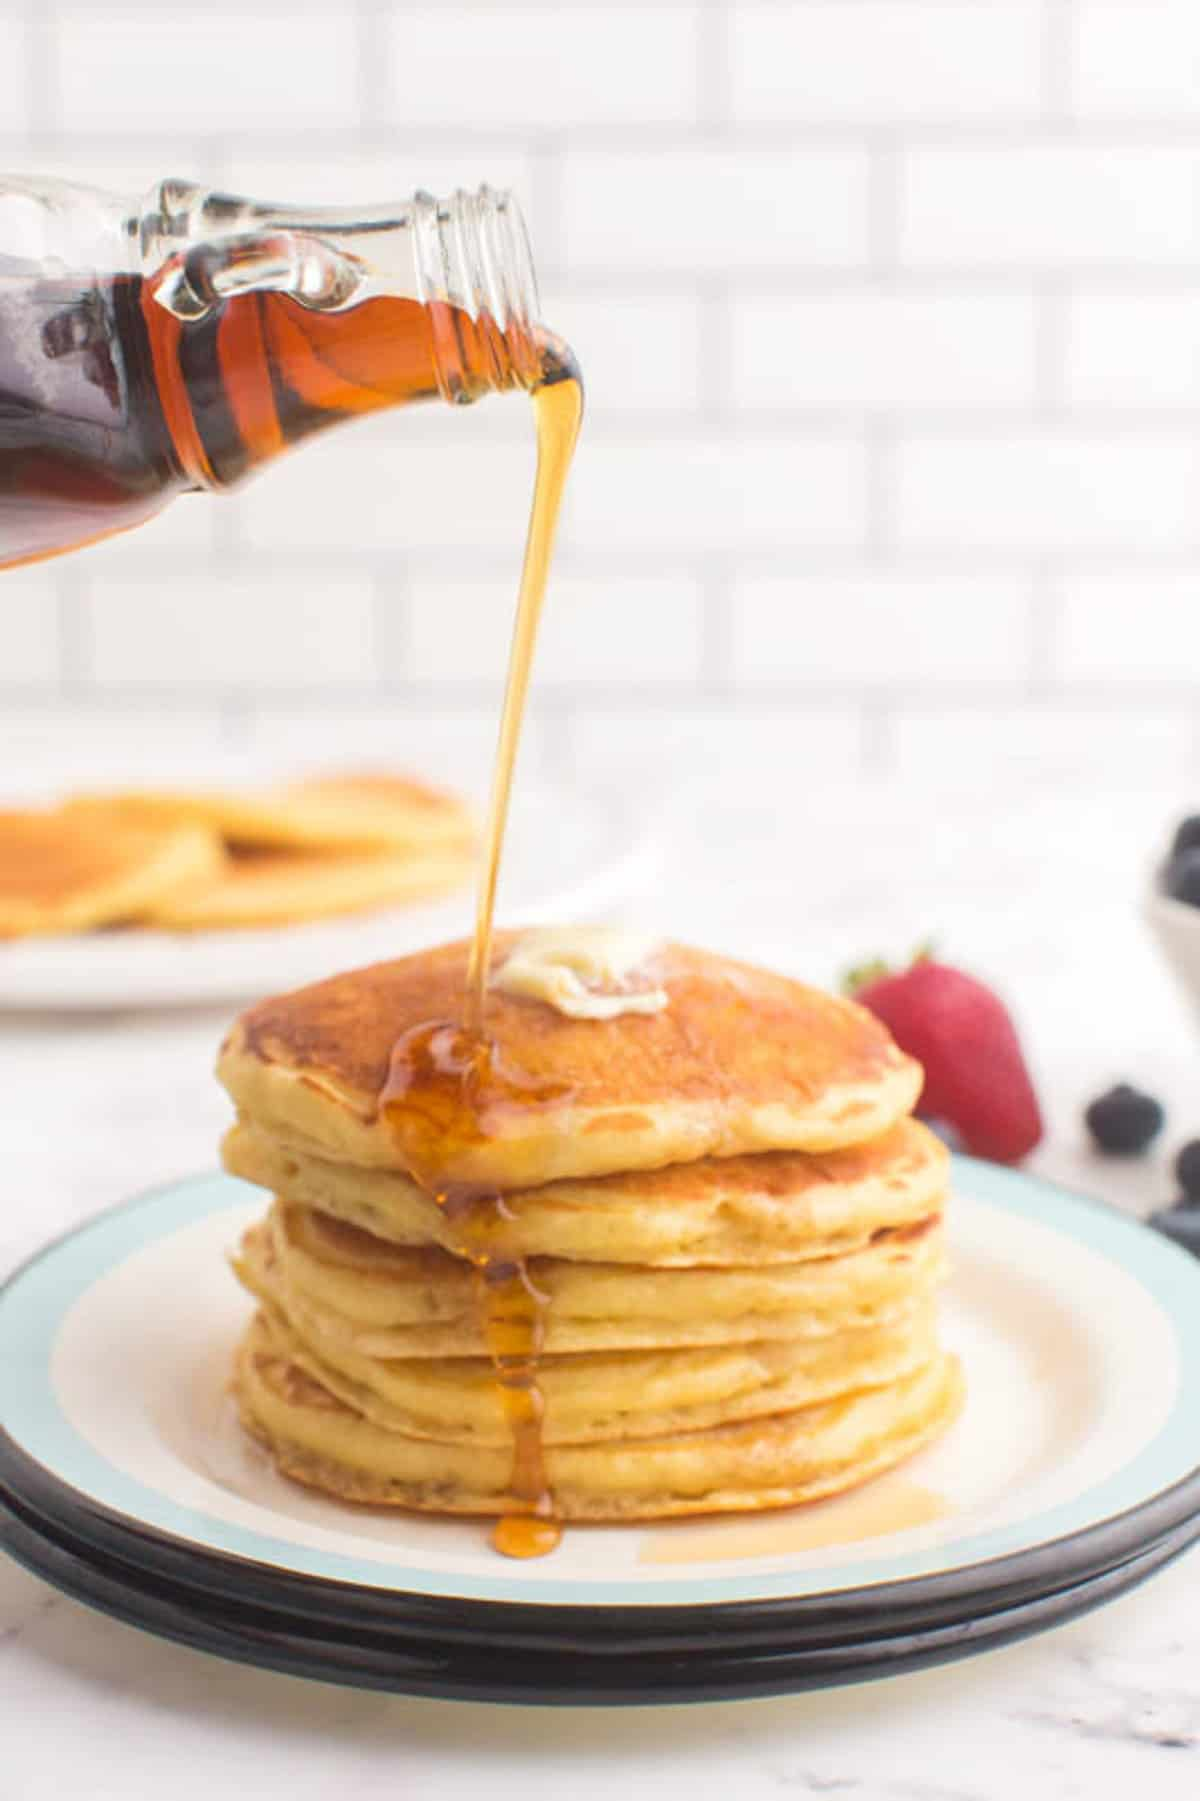 Syrup being poured on a stack of buttermilk pancakes, fresh fruit also visible.